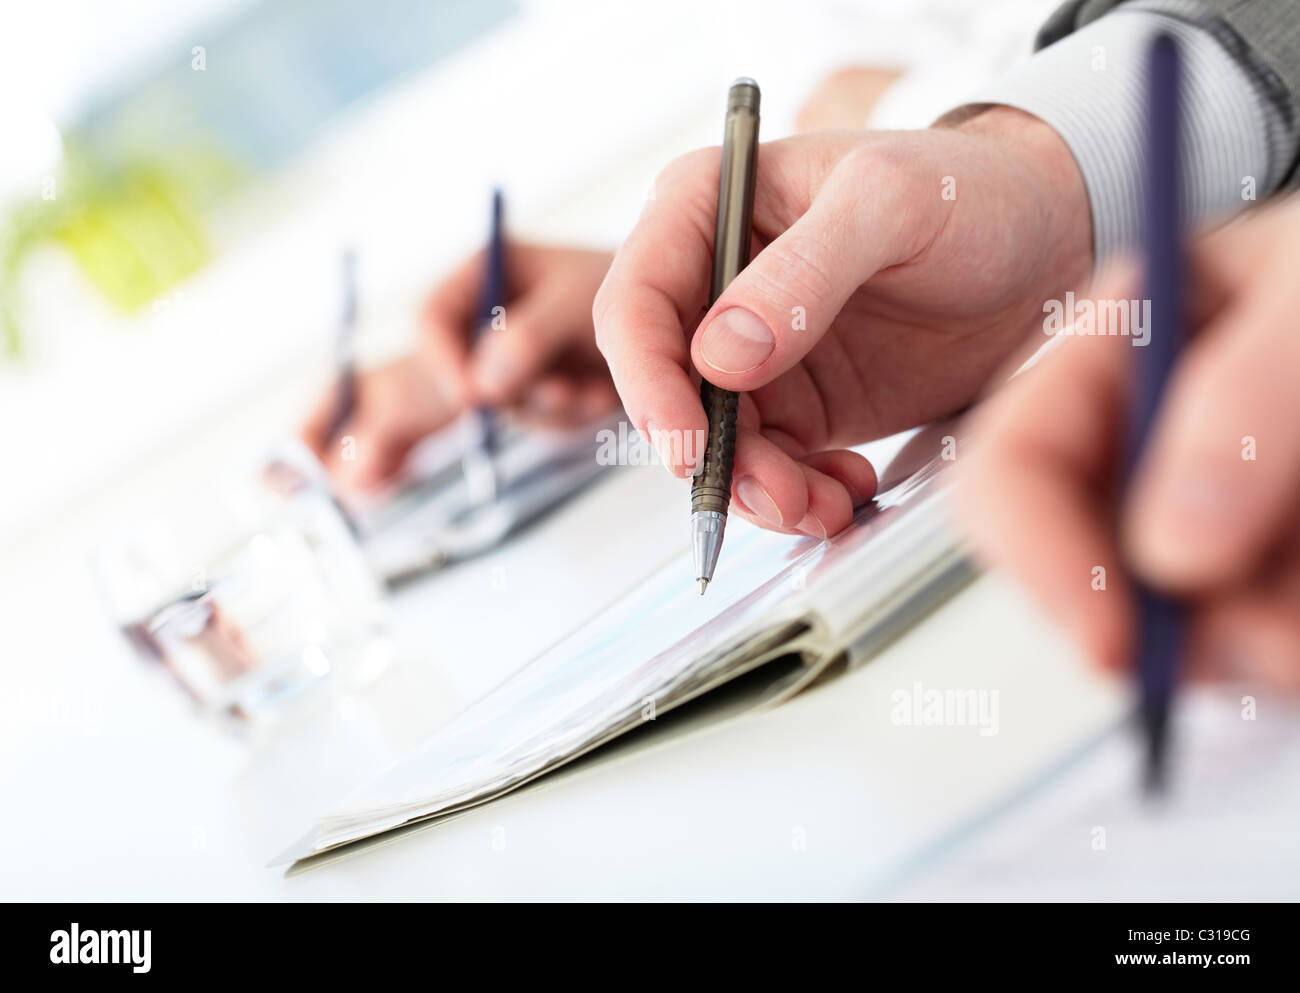 Row of human hands with pens making notes during conference - Stock Image